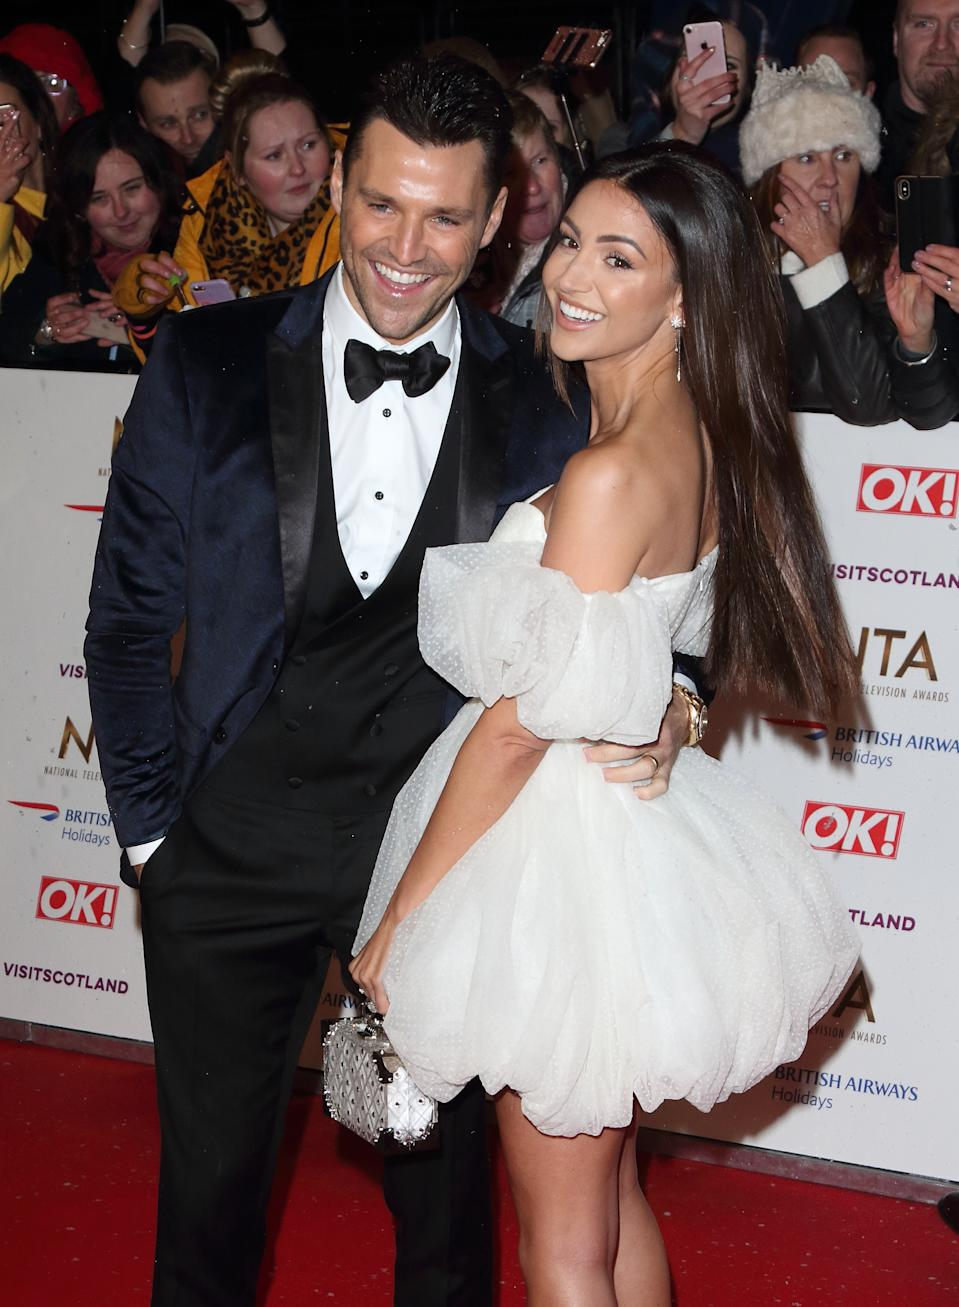 LONDON, -, UNITED KINGDOM - 2019/01/22: Mark Wright and Michelle Keegan are seen on the red carpet during the National Television Awards at the O2, Peninsula Square in London. (Photo by Keith Mayhew/SOPA Images/LightRocket via Getty Images)